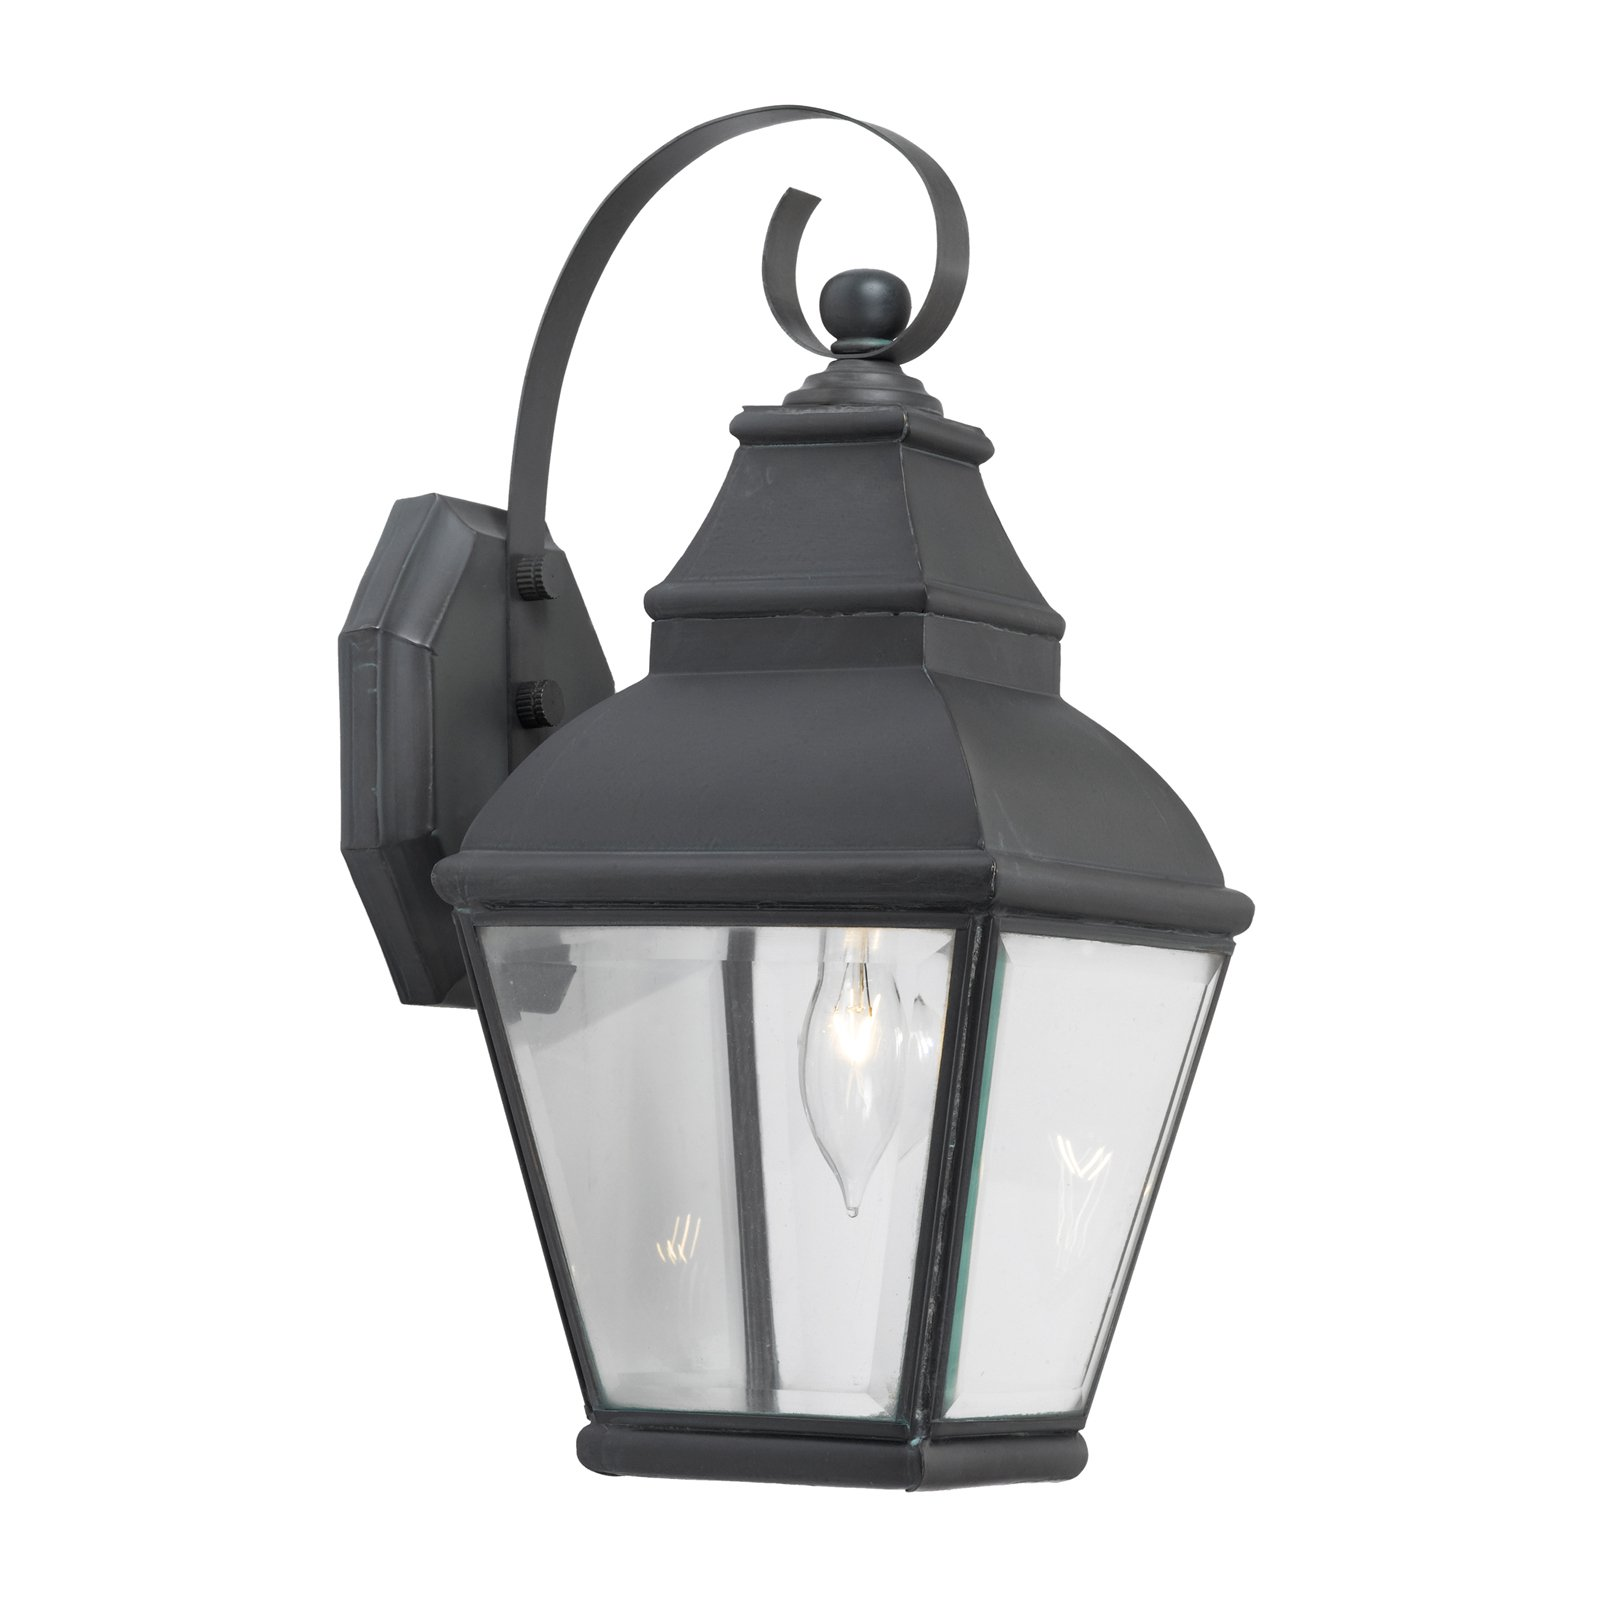 ELK Lighting Bristol 5214-C 1-Light Outdoor Wall Sconce by Elk Lighting